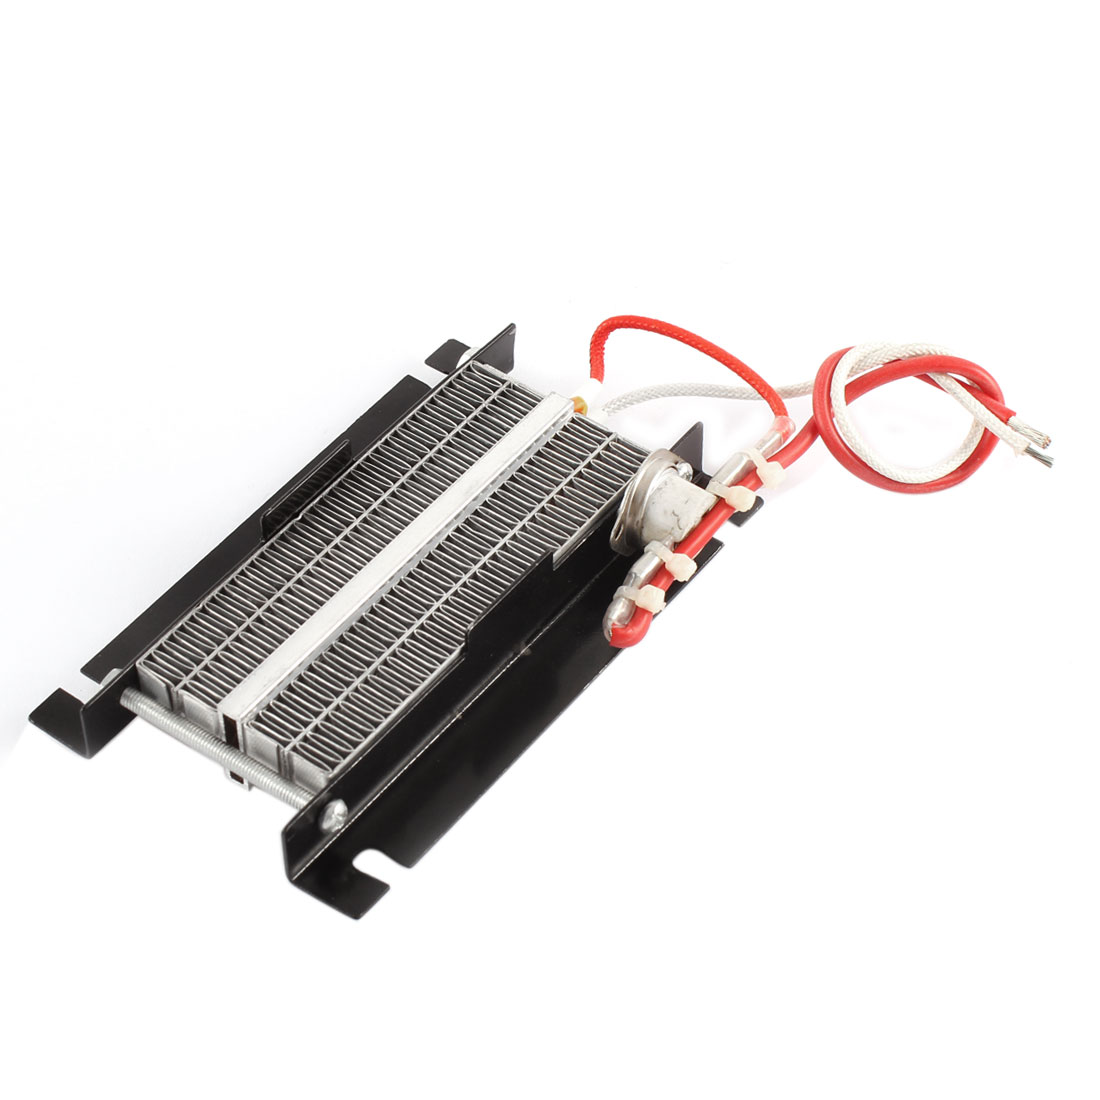 24V 250W 11-13A Aluminum PTC Heating Element Thermostat Heater Plate Black